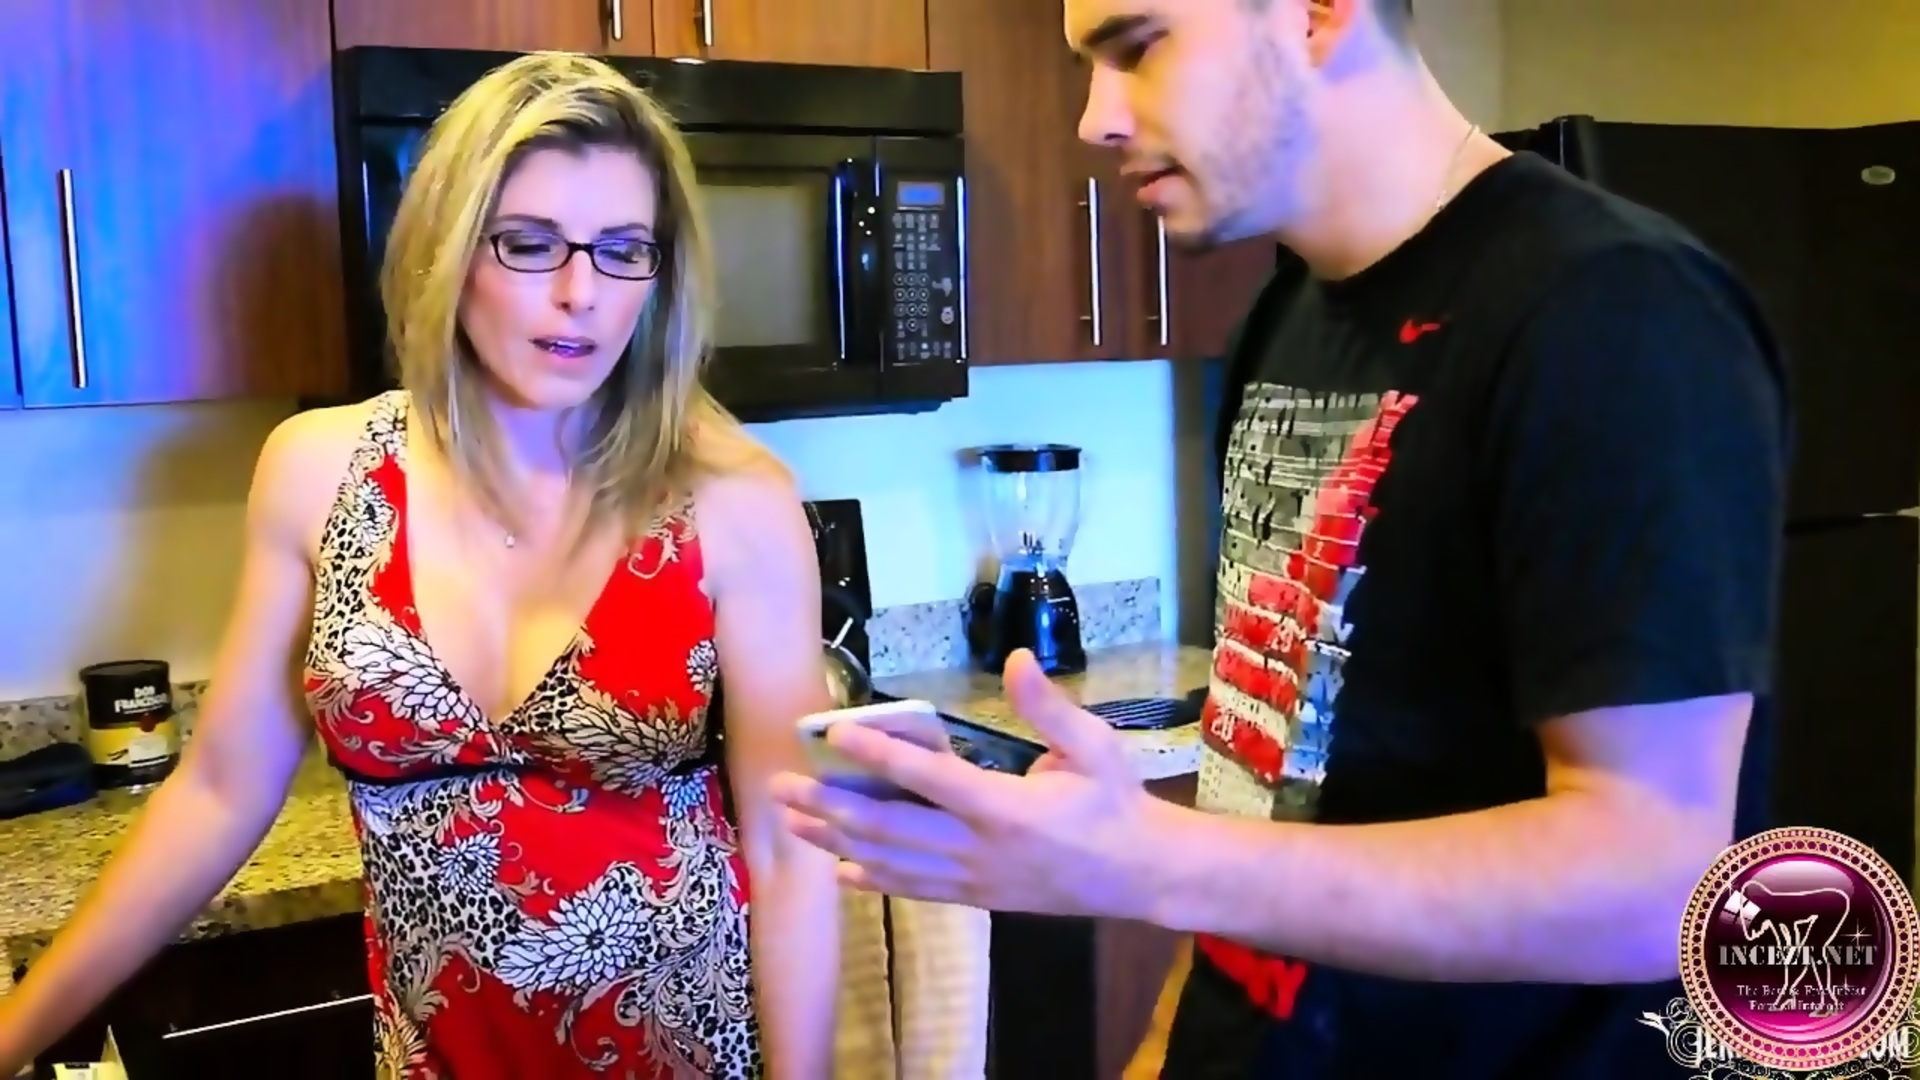 Brooklyn Chase Your Dick